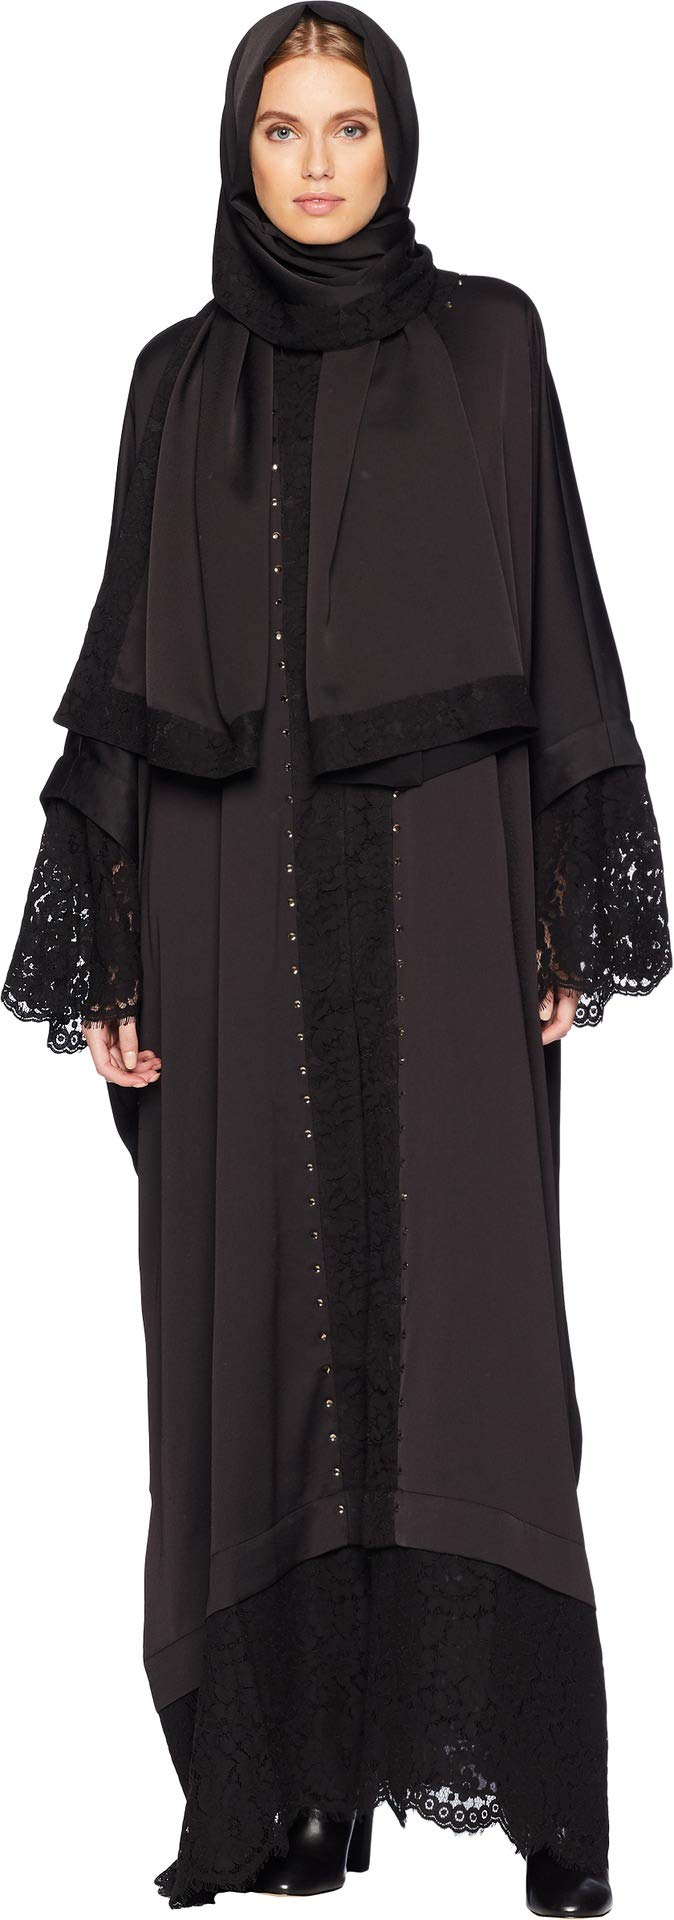 Juicy Couture Women's Embellished Abaya with Lace Pitch Black Petite/Small